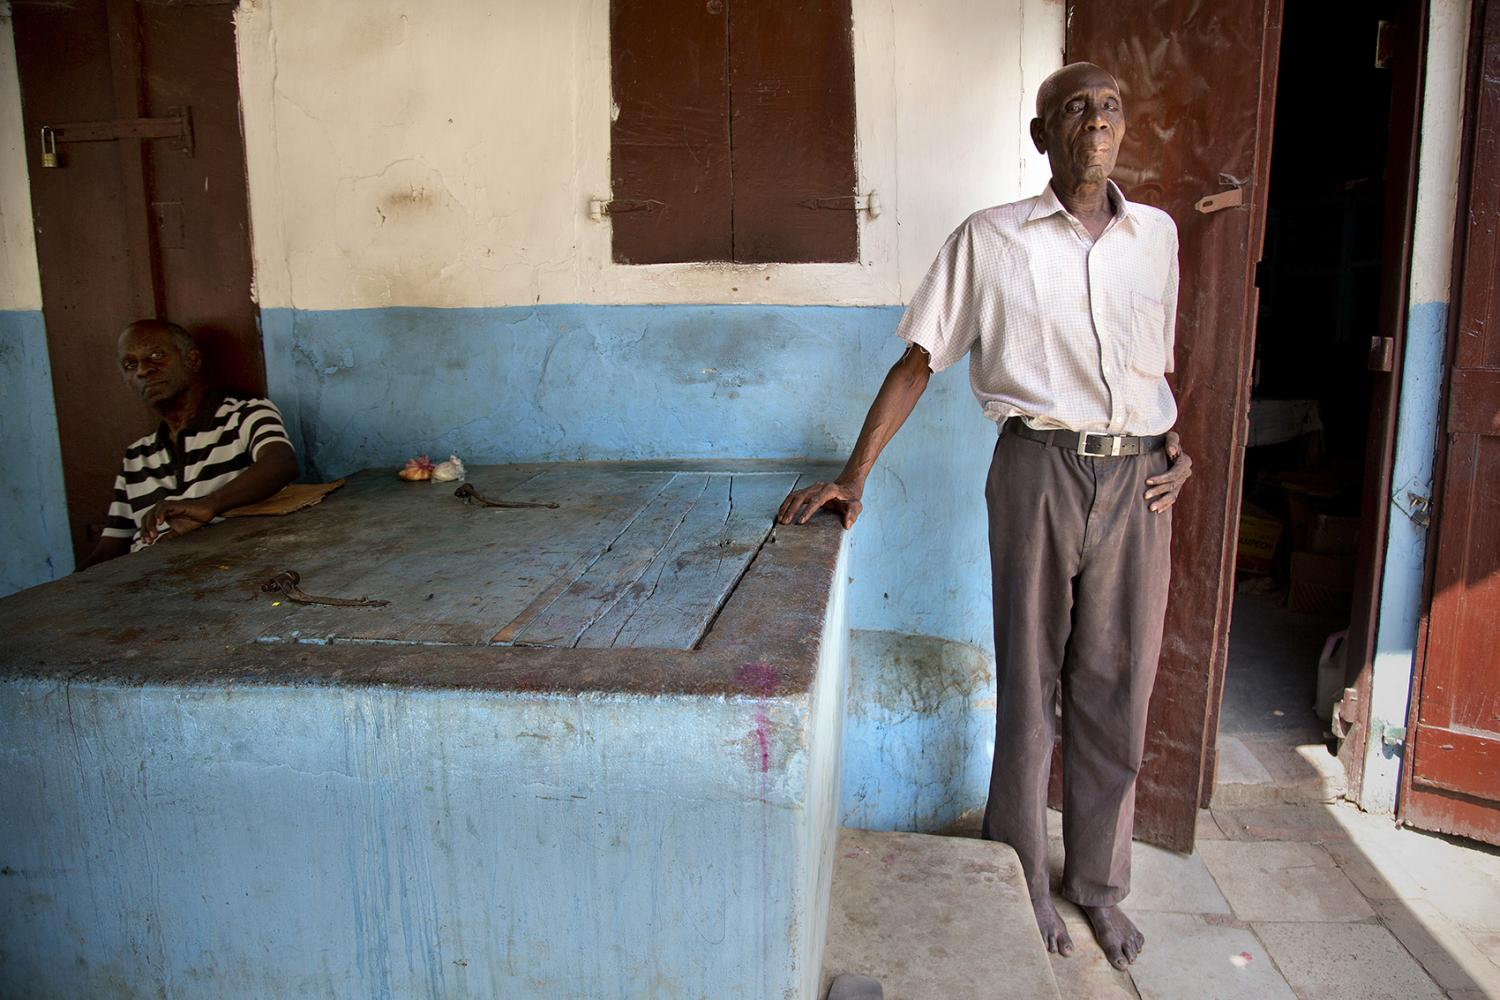 The oldest man alive in Milot, Haiti. He is 99 in the photo.